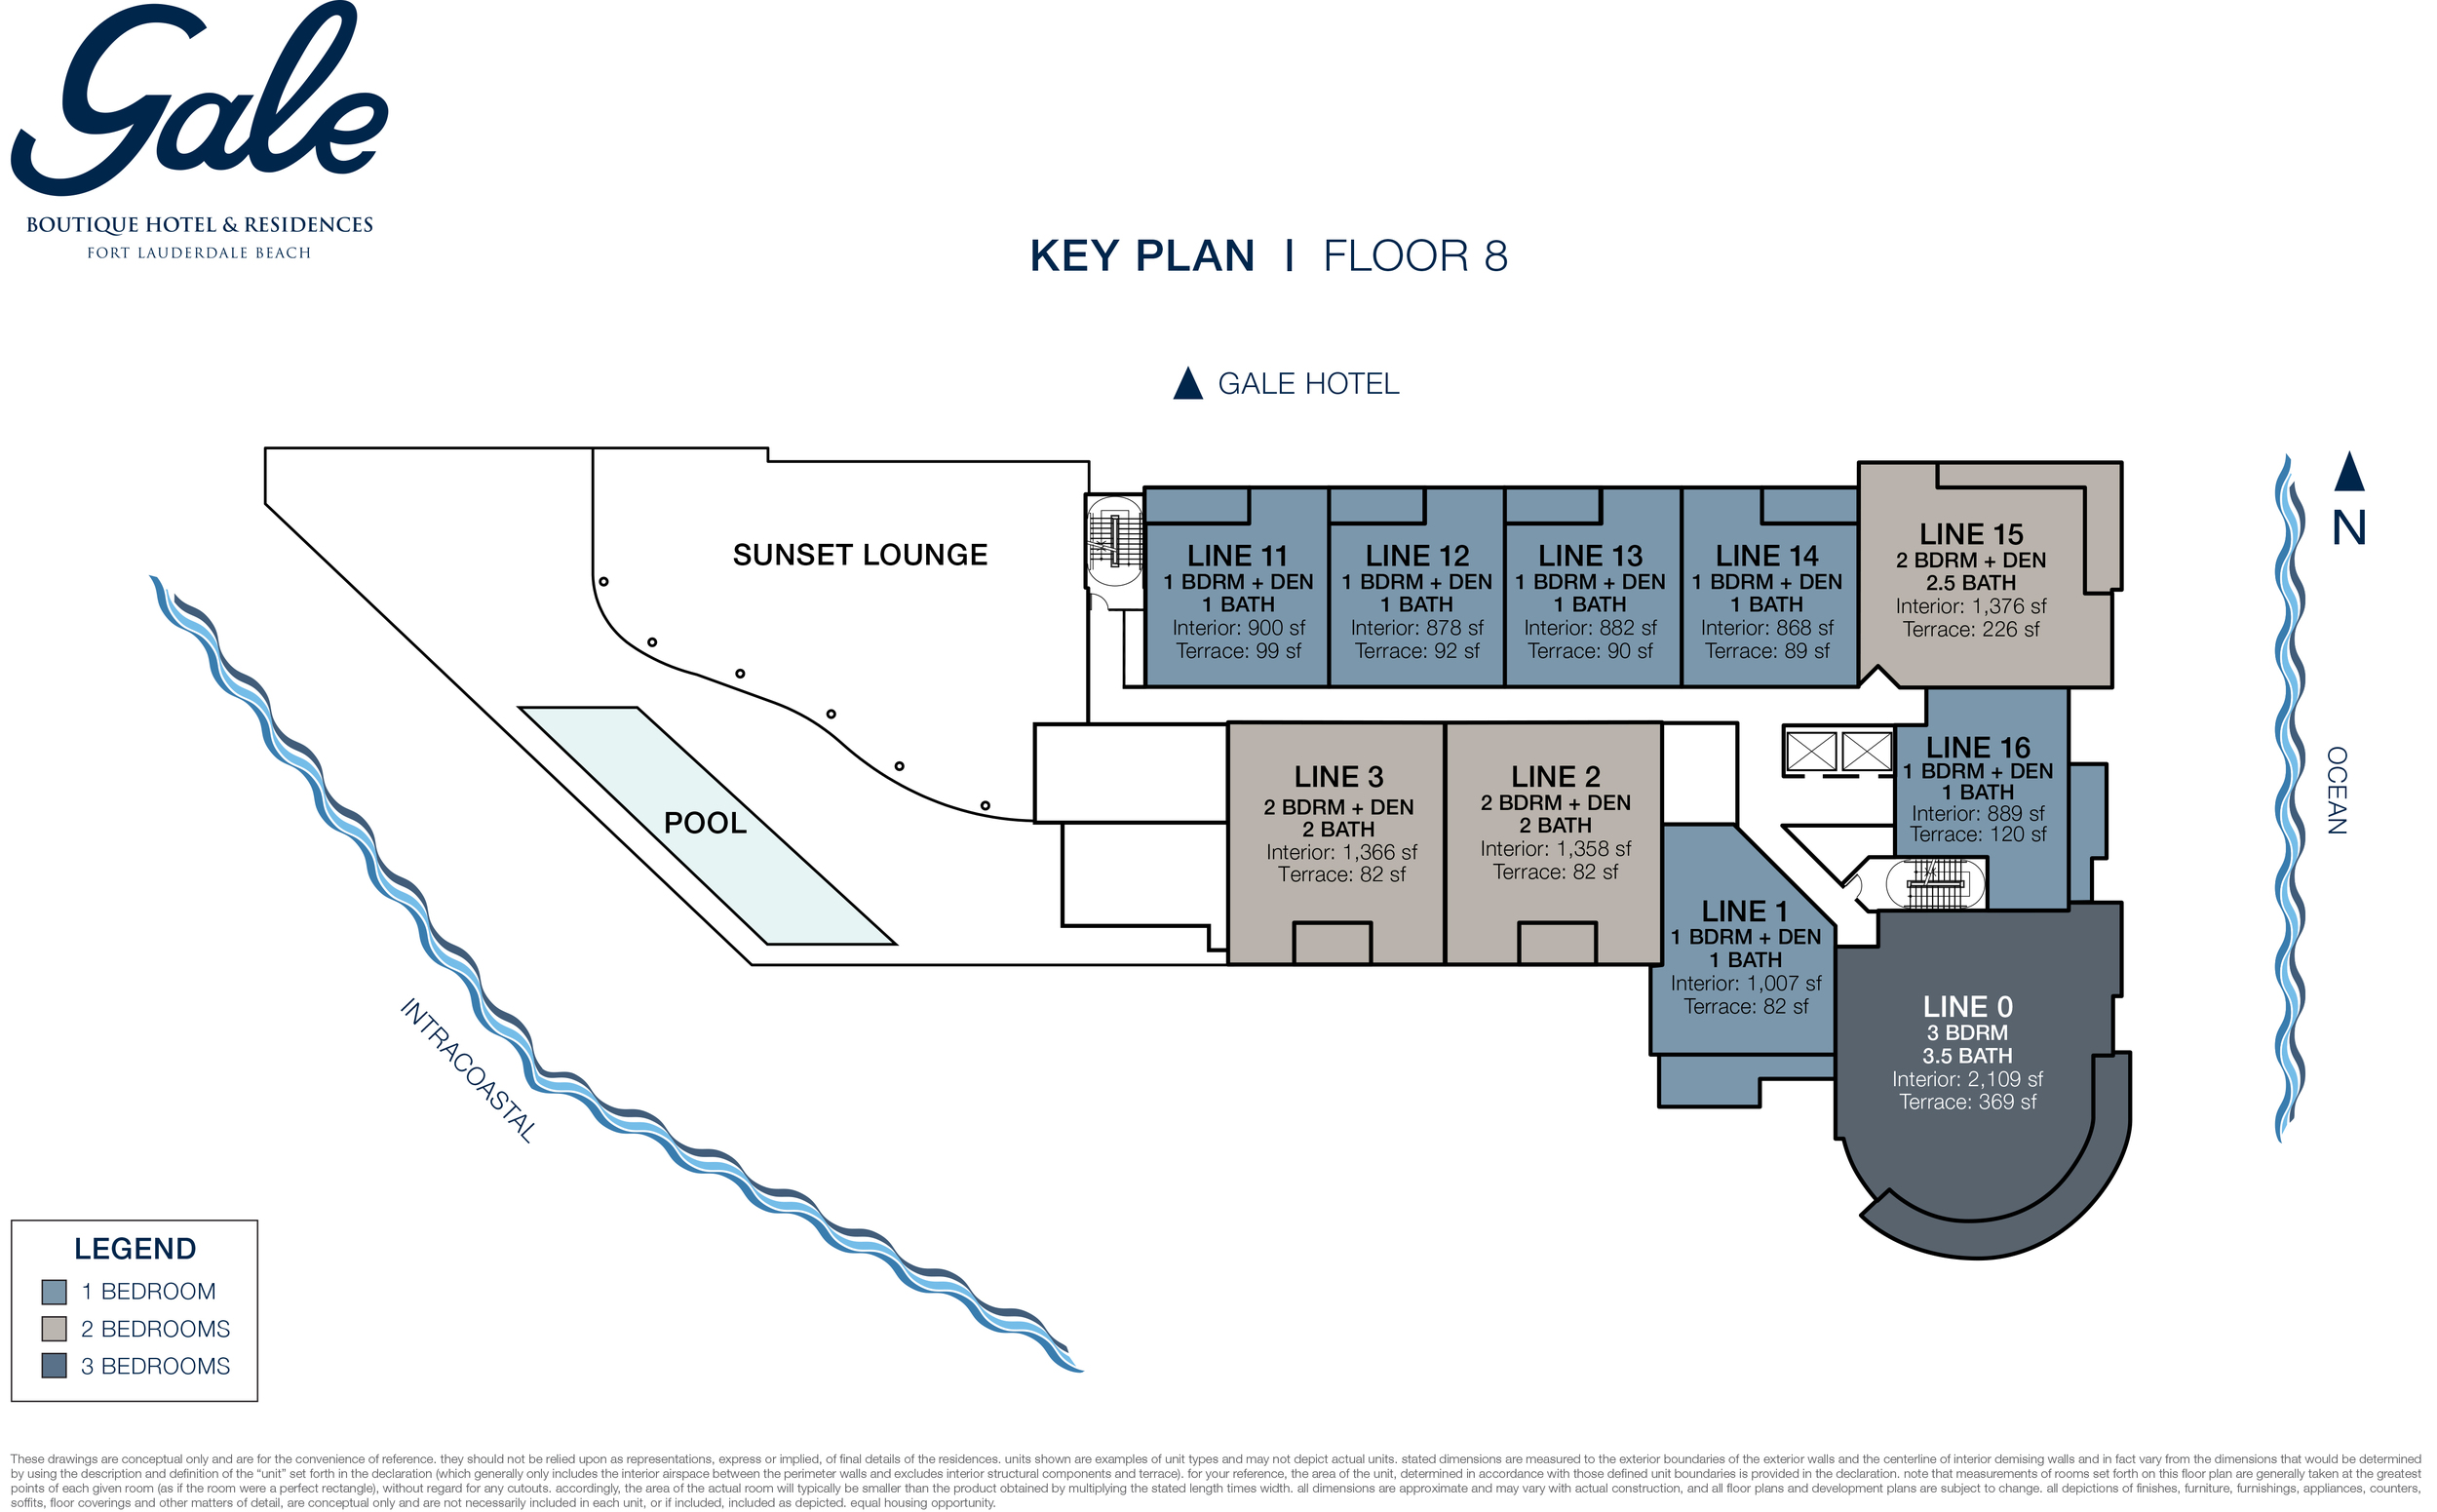 Gale Boutique Hotel & Residences Ft.Lauderdale 8th Floor Key Plan